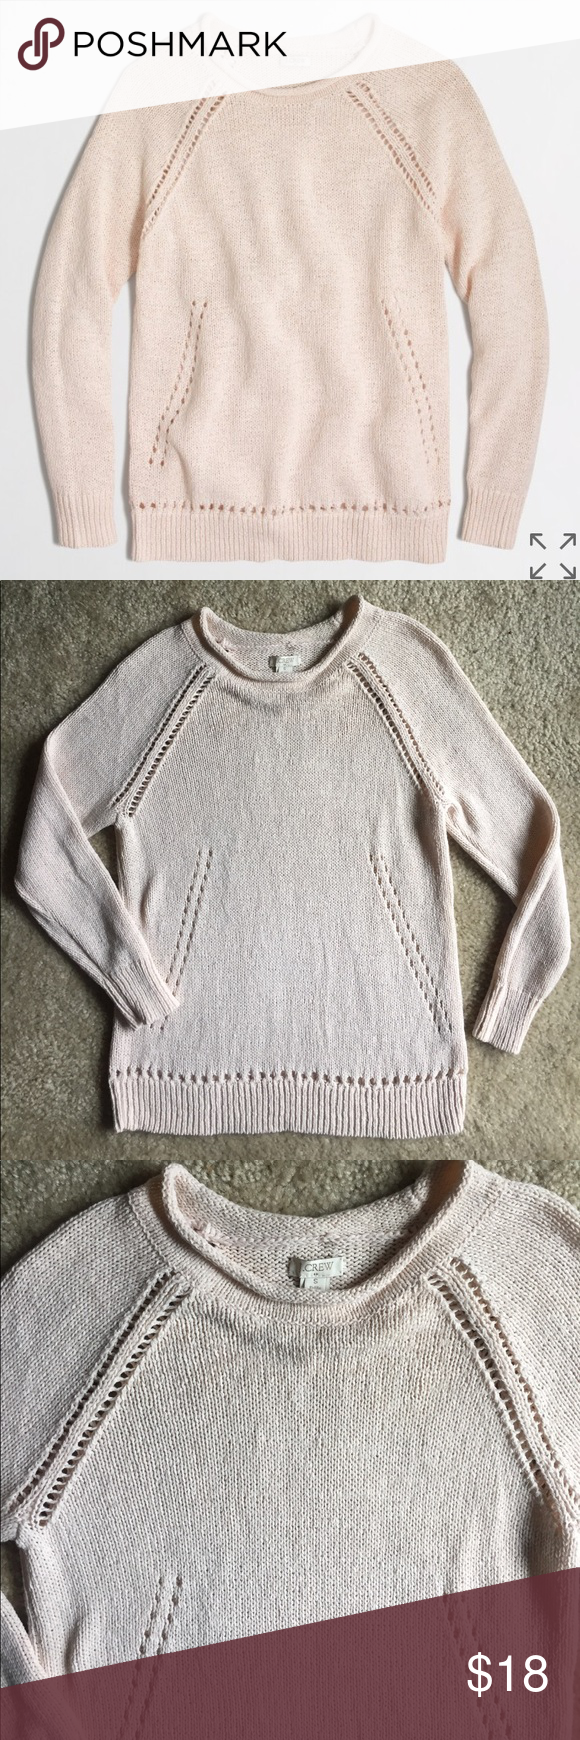 dc82045621 J.Crew Petite Beach Sweater w/ Pointelle Detail, S Adorable knit sweater  from J. Crew Factory. In excellent used condition with no flaws!